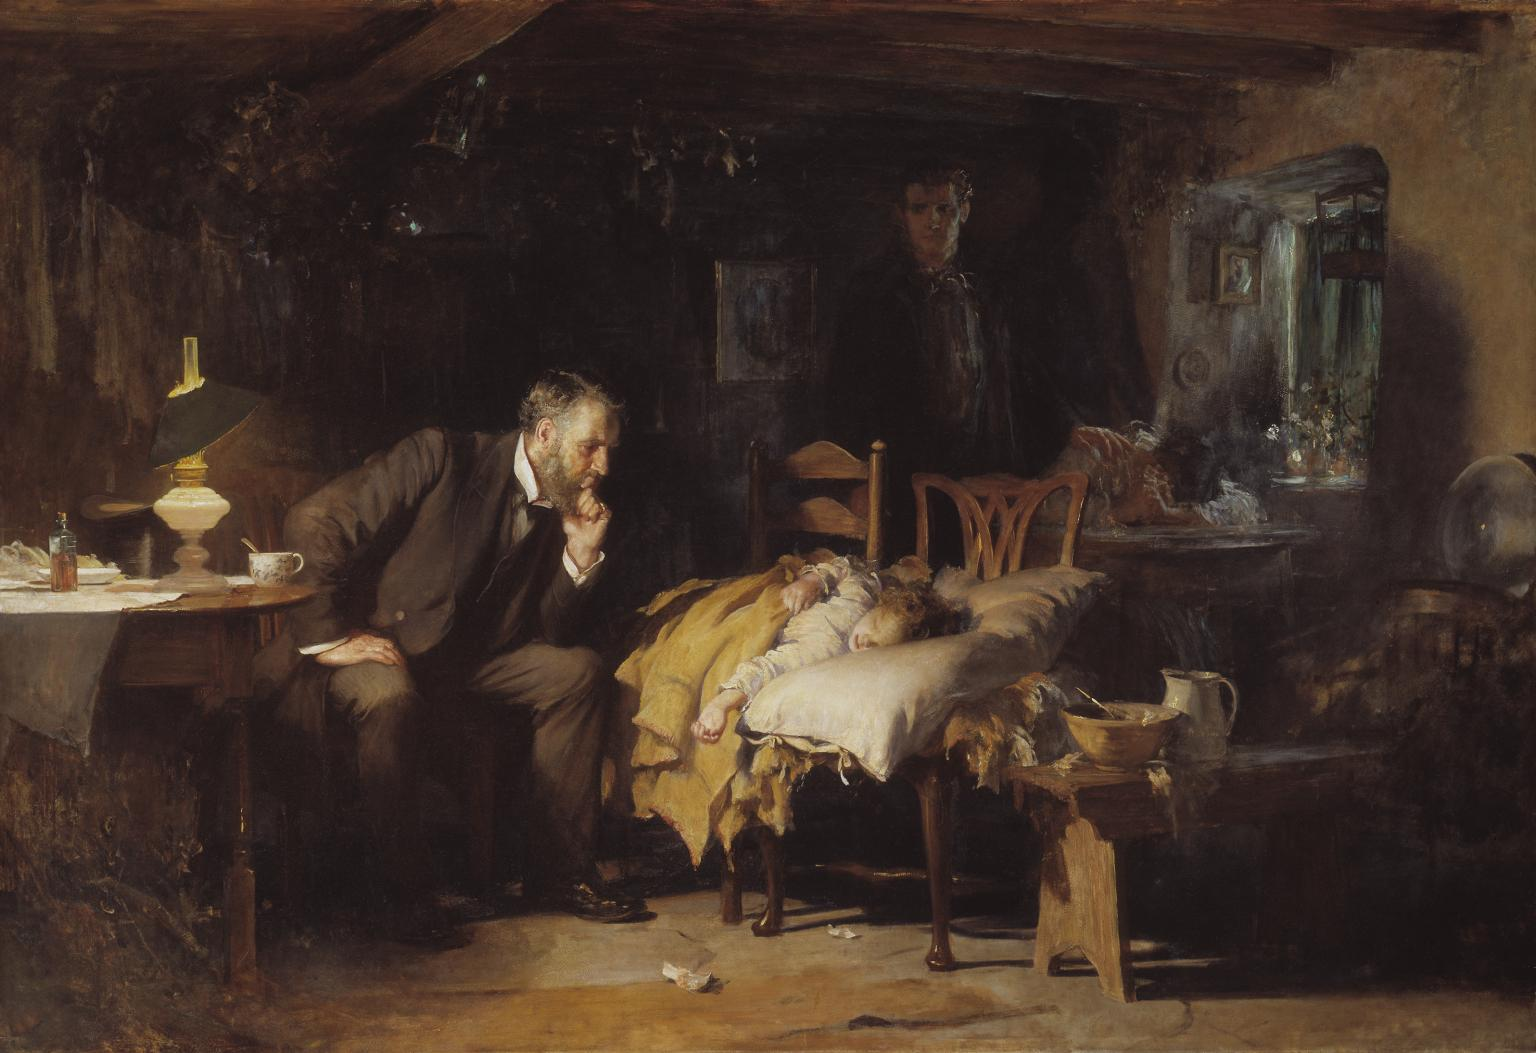 File:The Doctor Luke Fildes crop.jpg